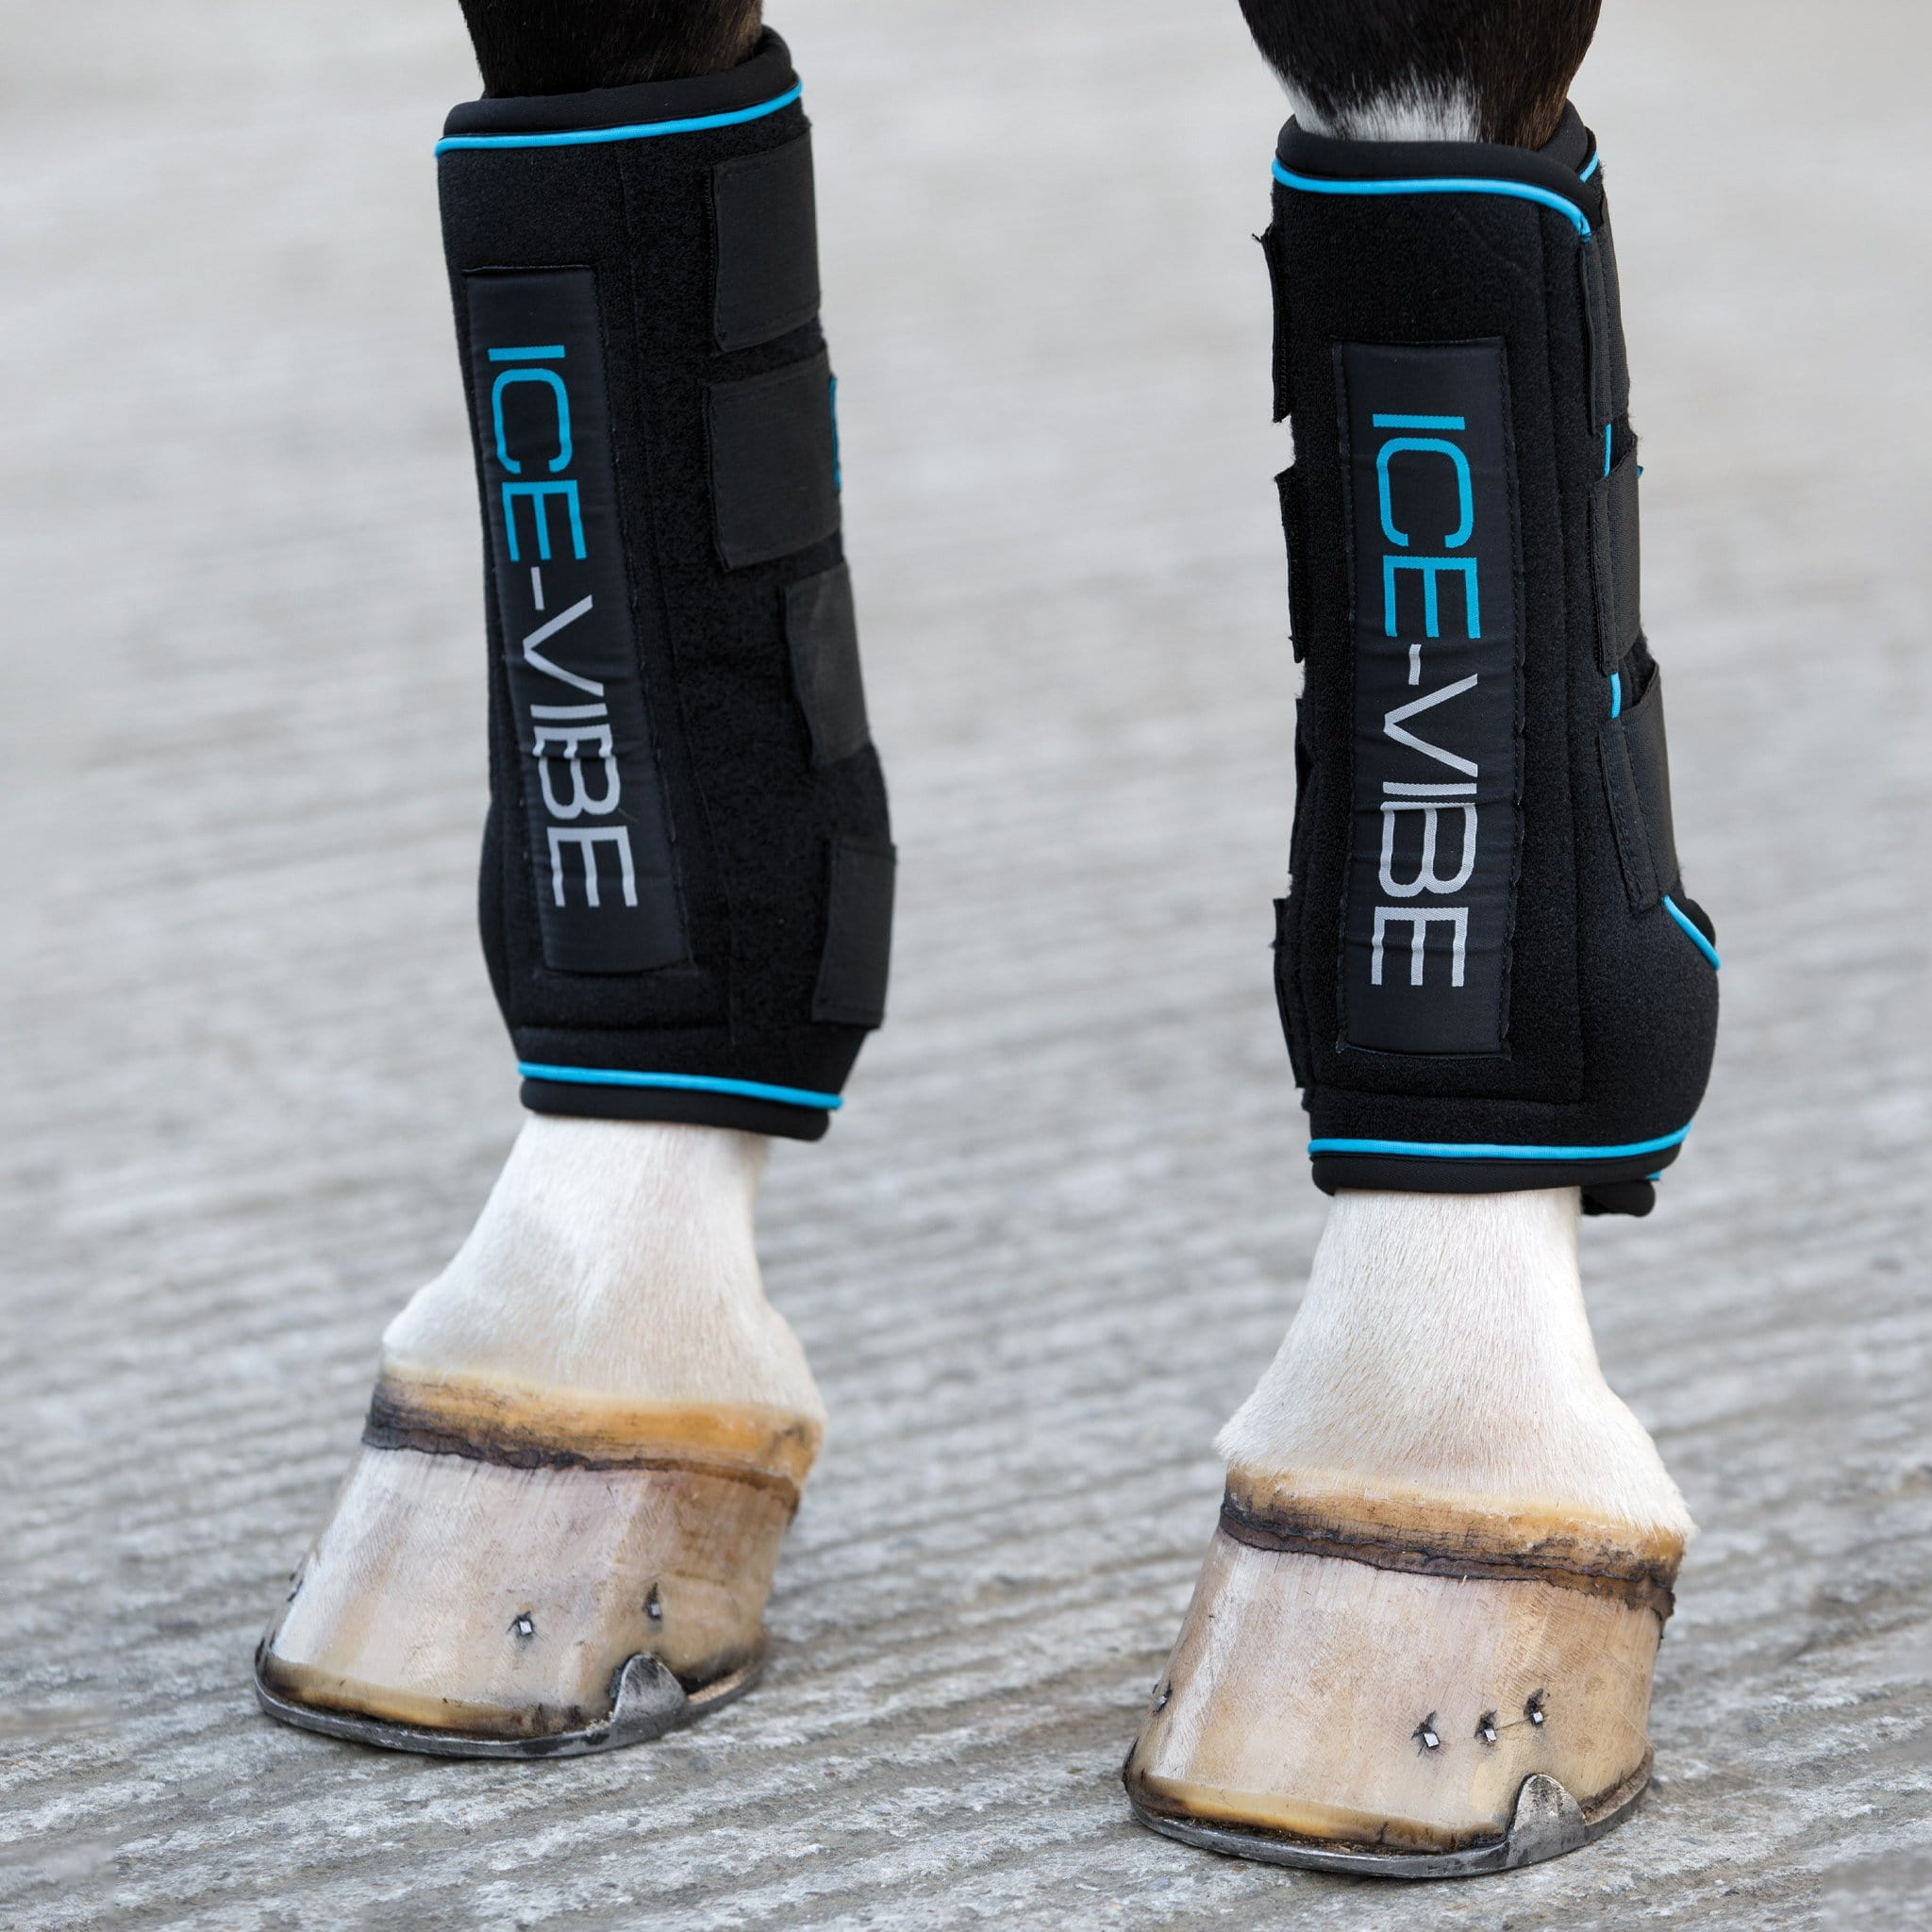 Horseware Ice-Vibe Tendon Boots DBHK8V Black and Teal Front